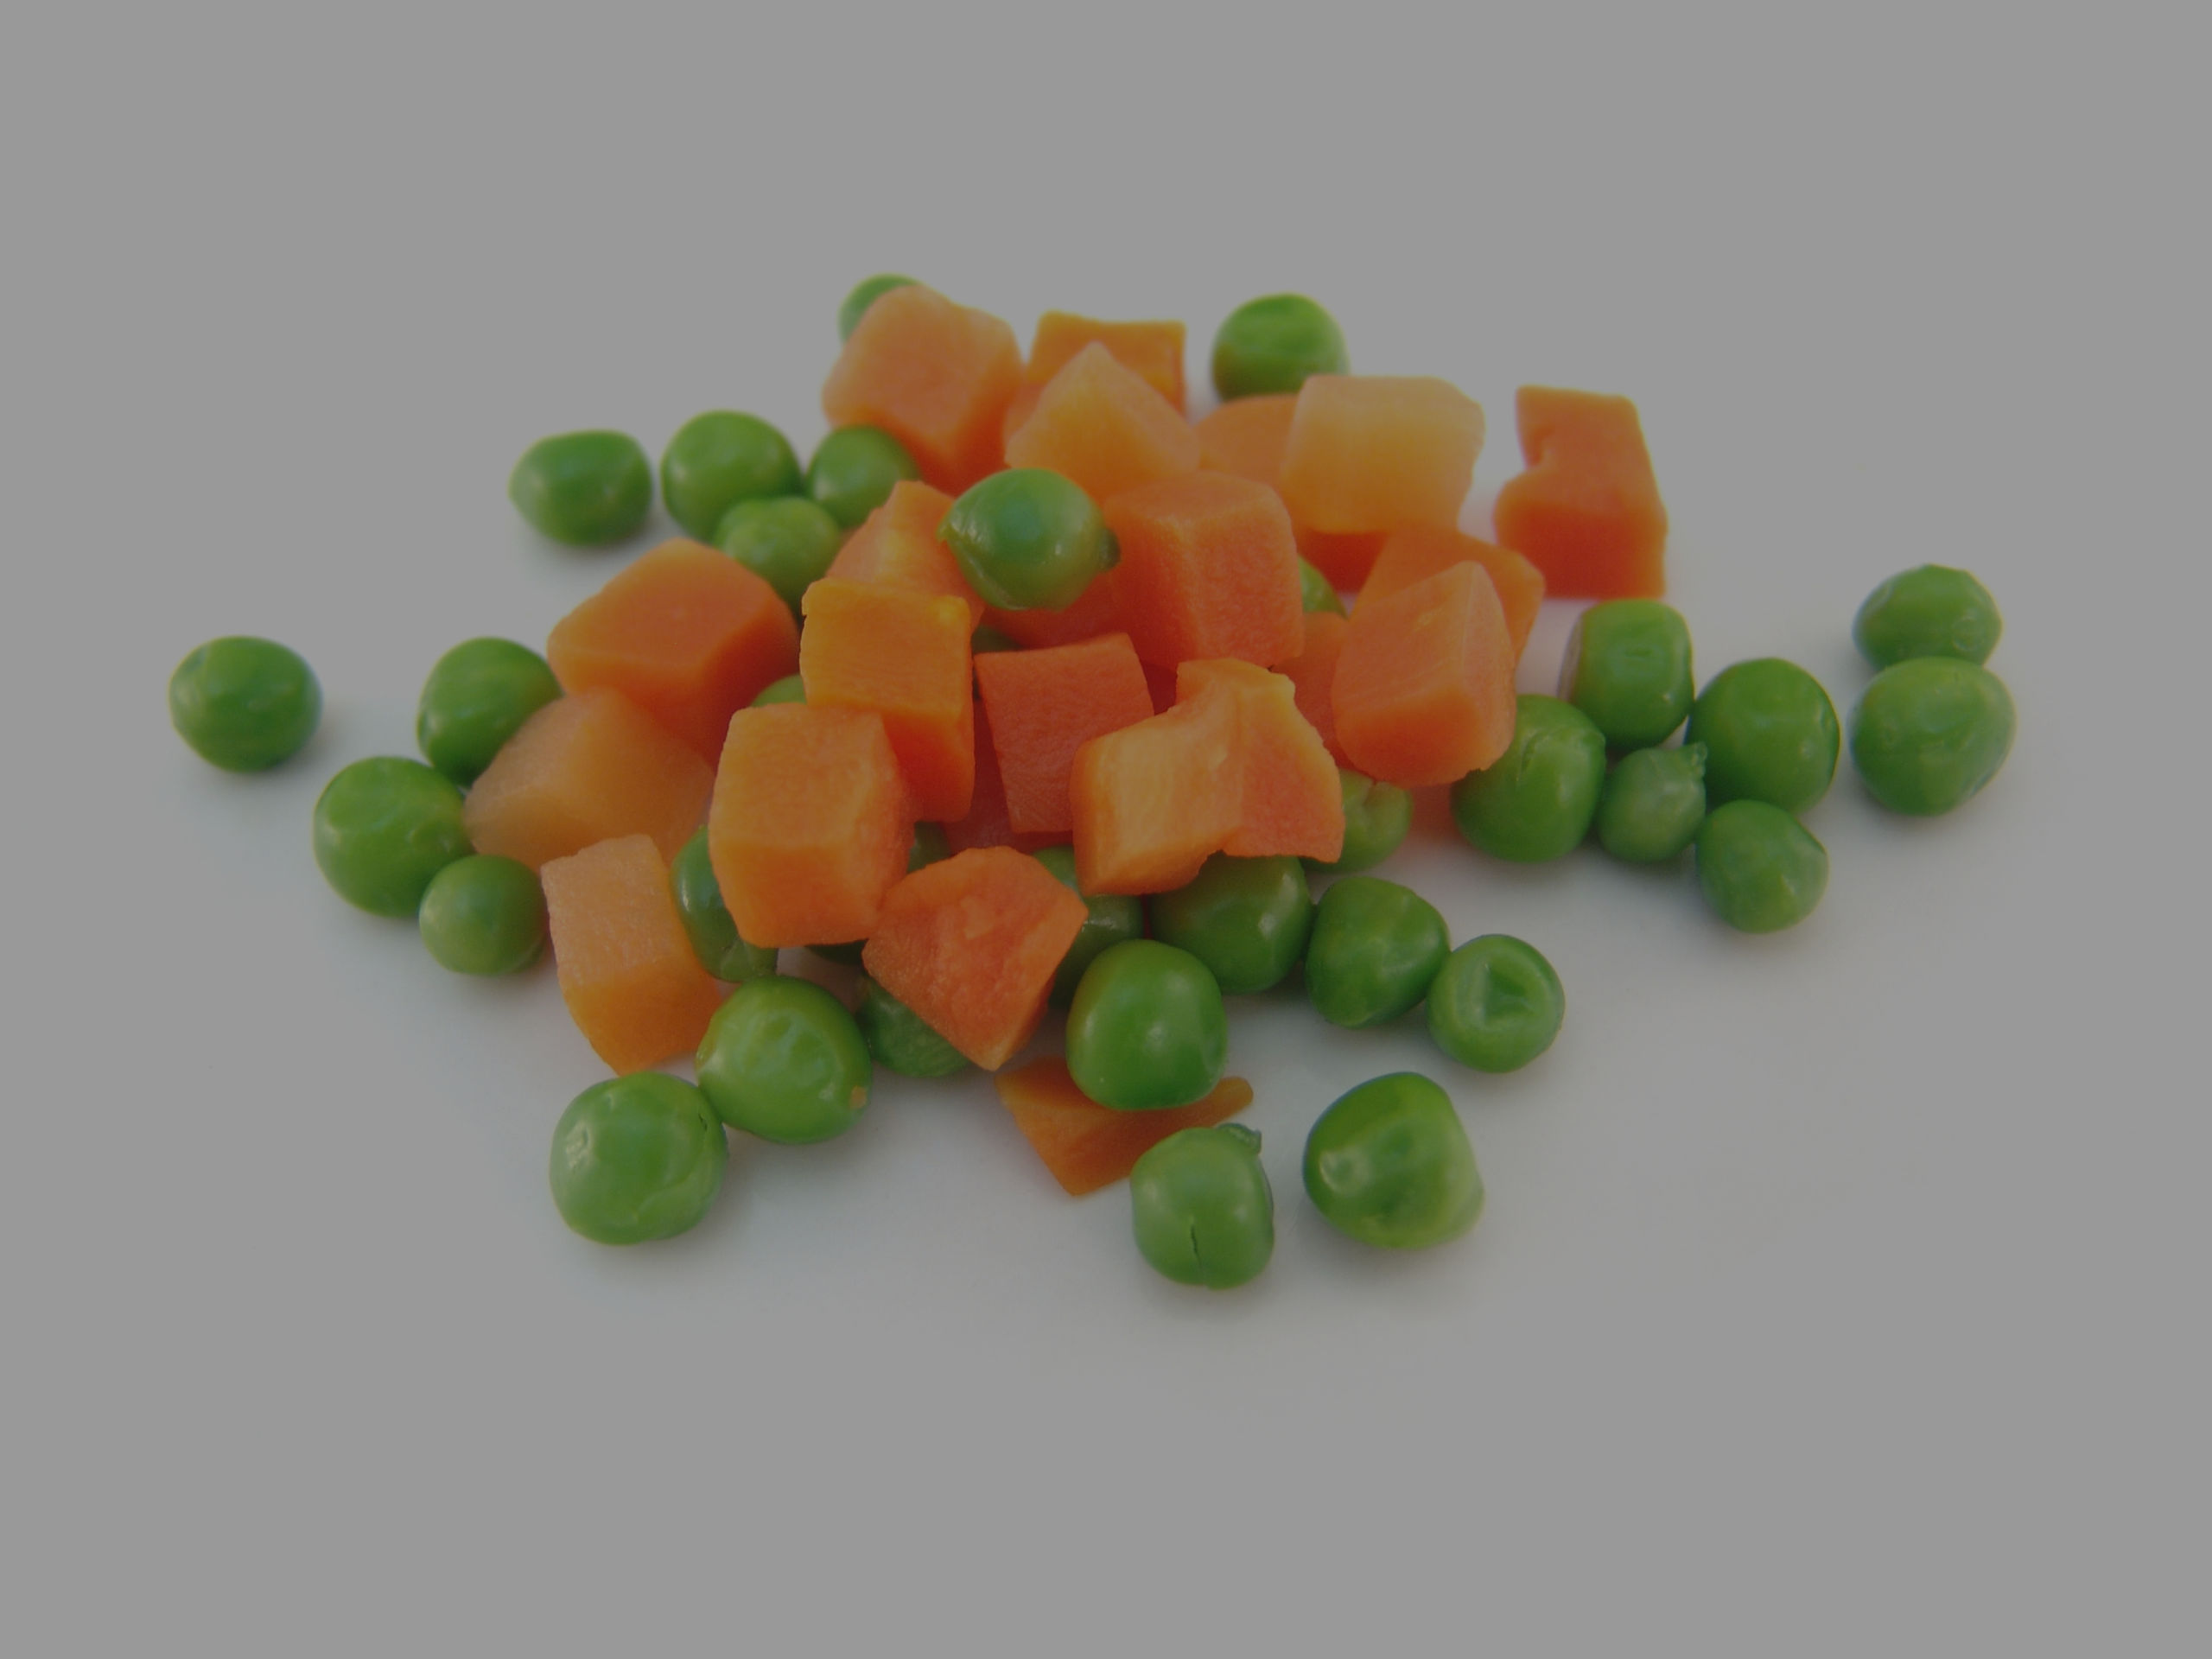 Like Peas and Carrots: The Importance of the Agent/Lender Relationship